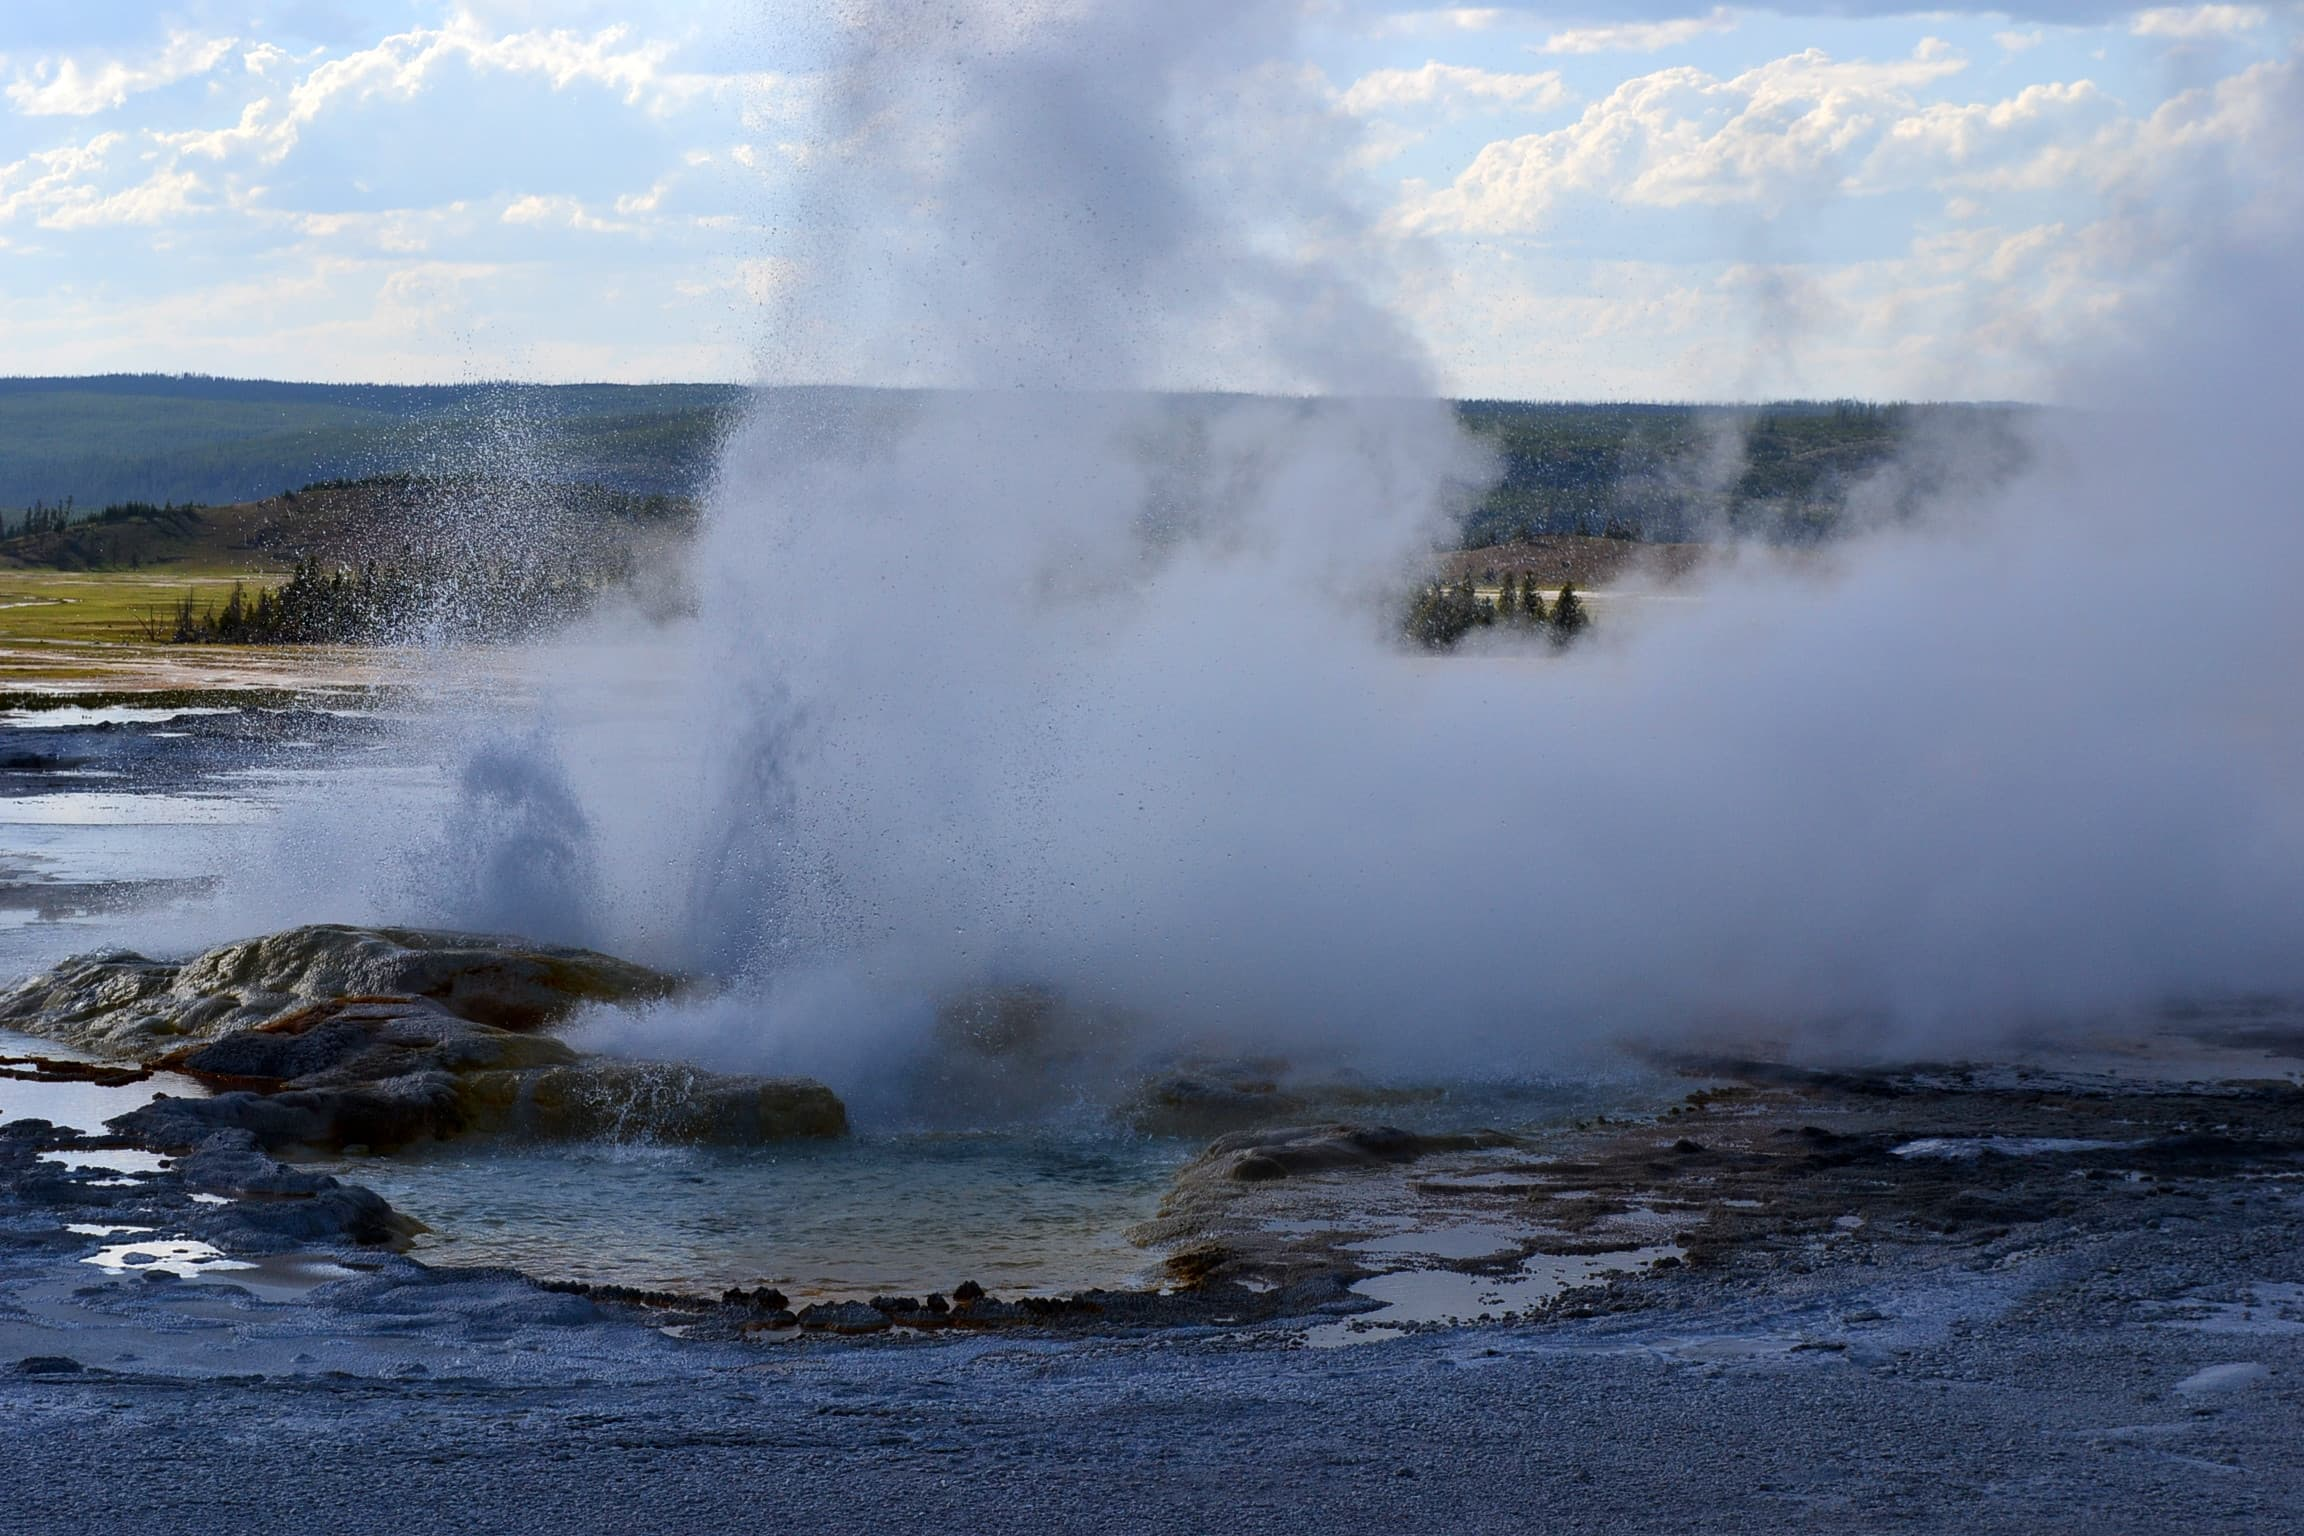 Fifth picture of continuing geyser eruption.